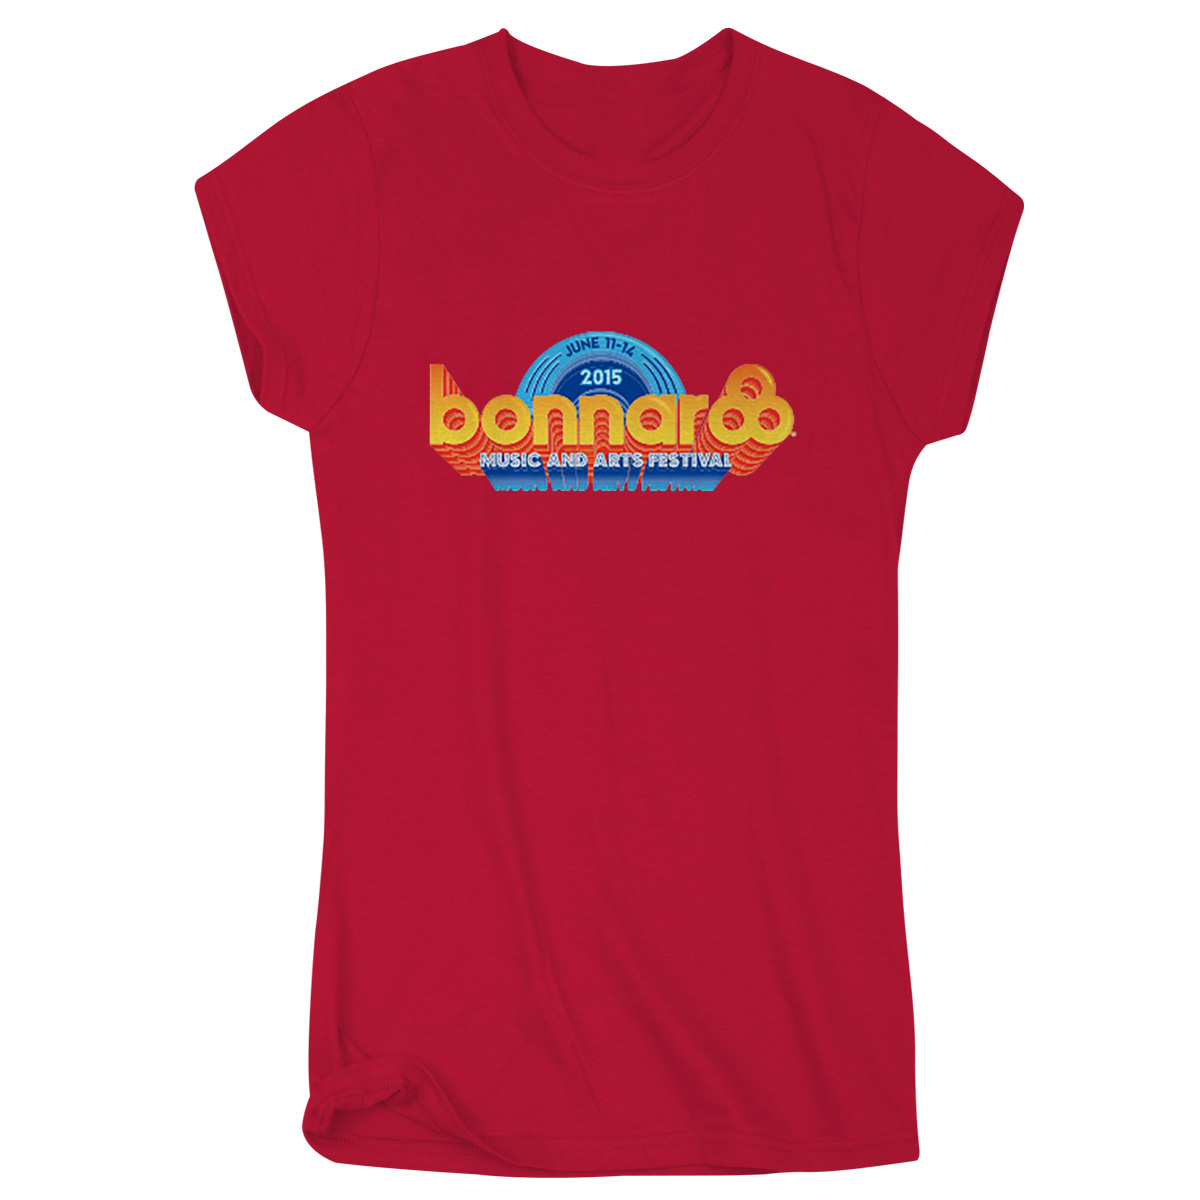 Bonnaroo 2015 Women's Main Event T-Shirt